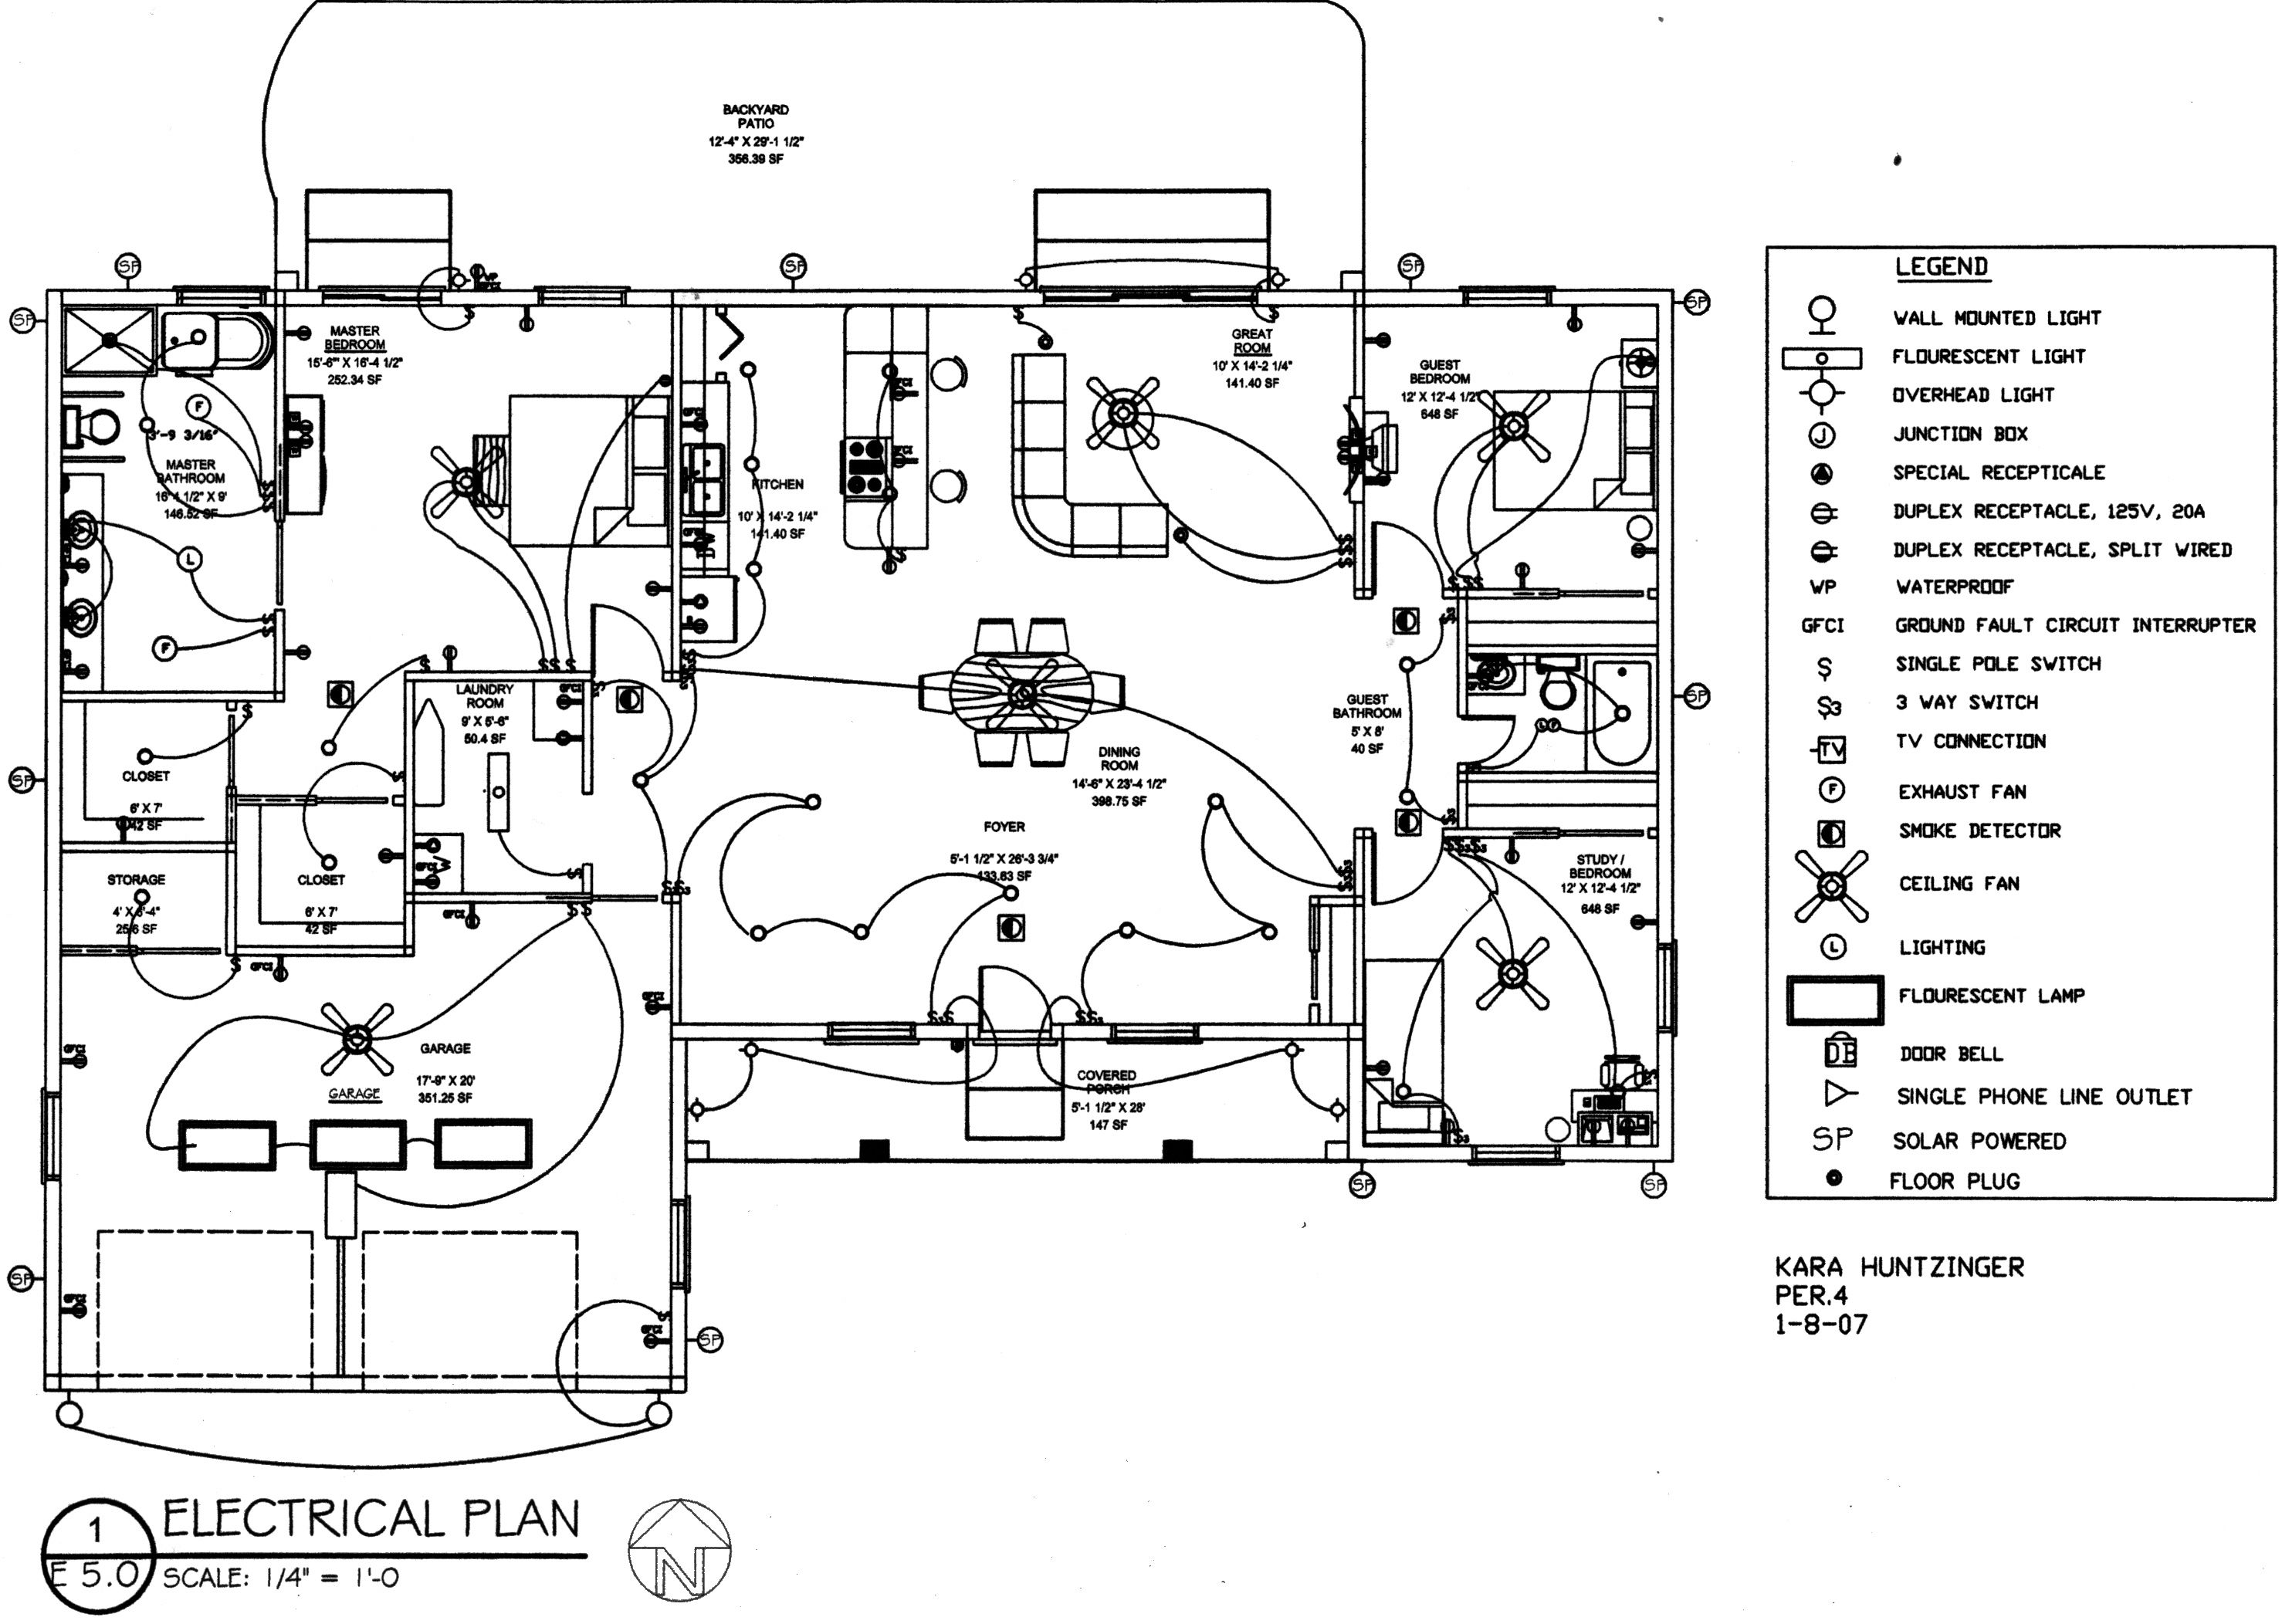 hight resolution of electrical plan house wiring library 3 bedroom 2 story house plans electrical plan 2 bedroom